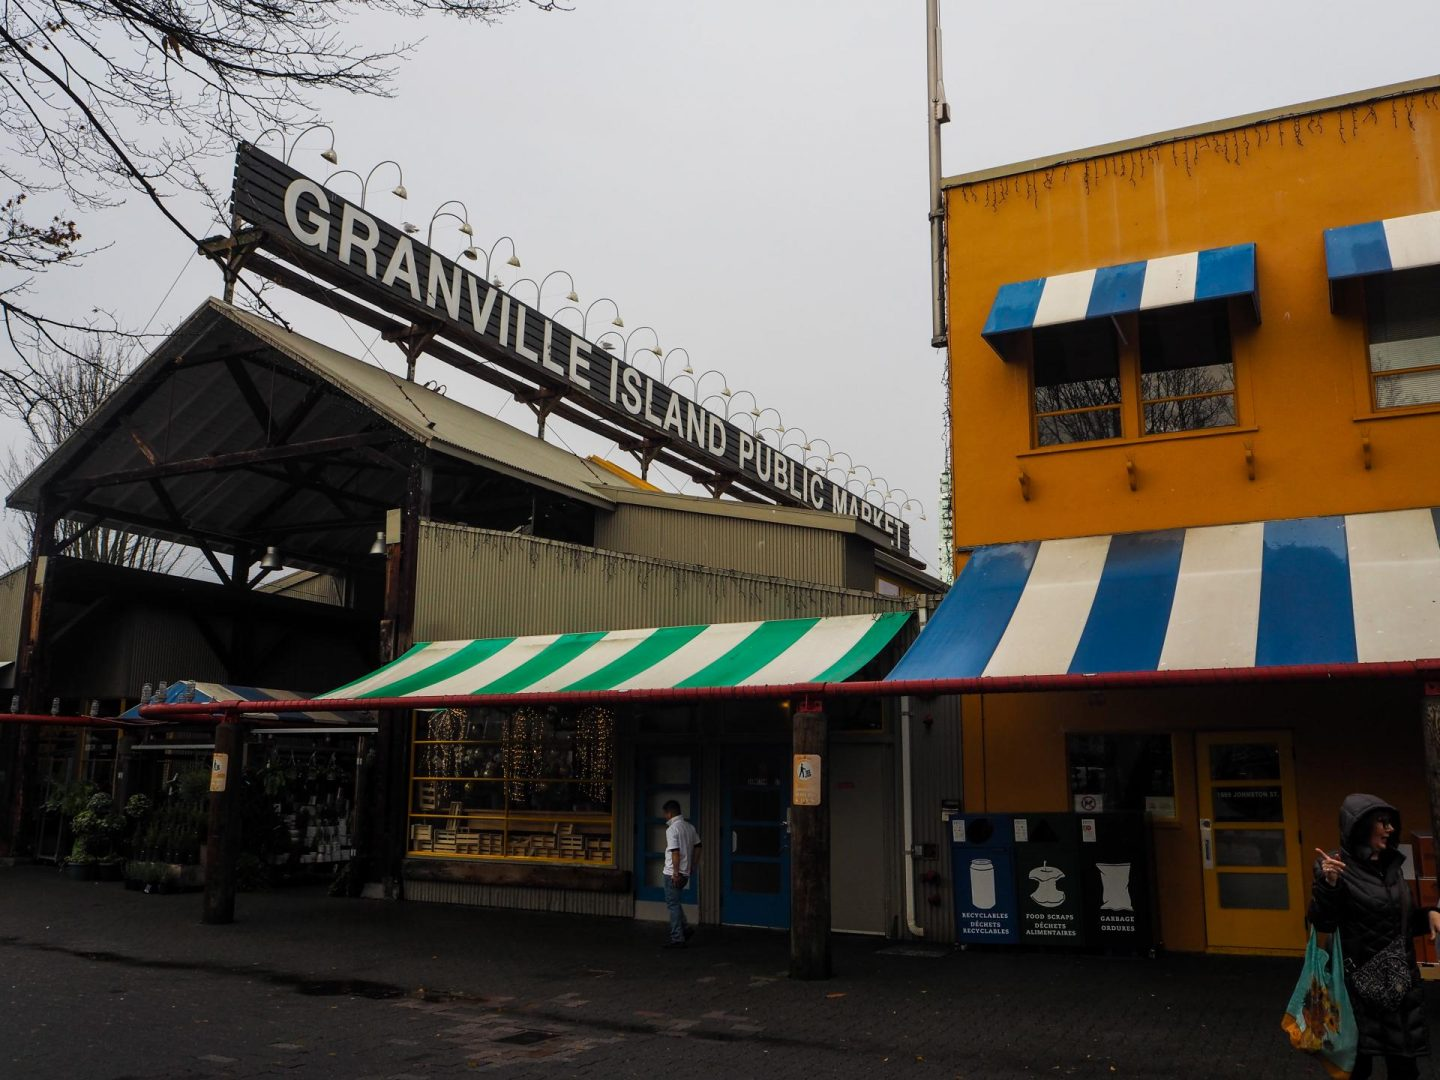 Exploring Vancouver with Marco Polo Guides, Granville Island - Rachel Nicole UK Travel Blogger